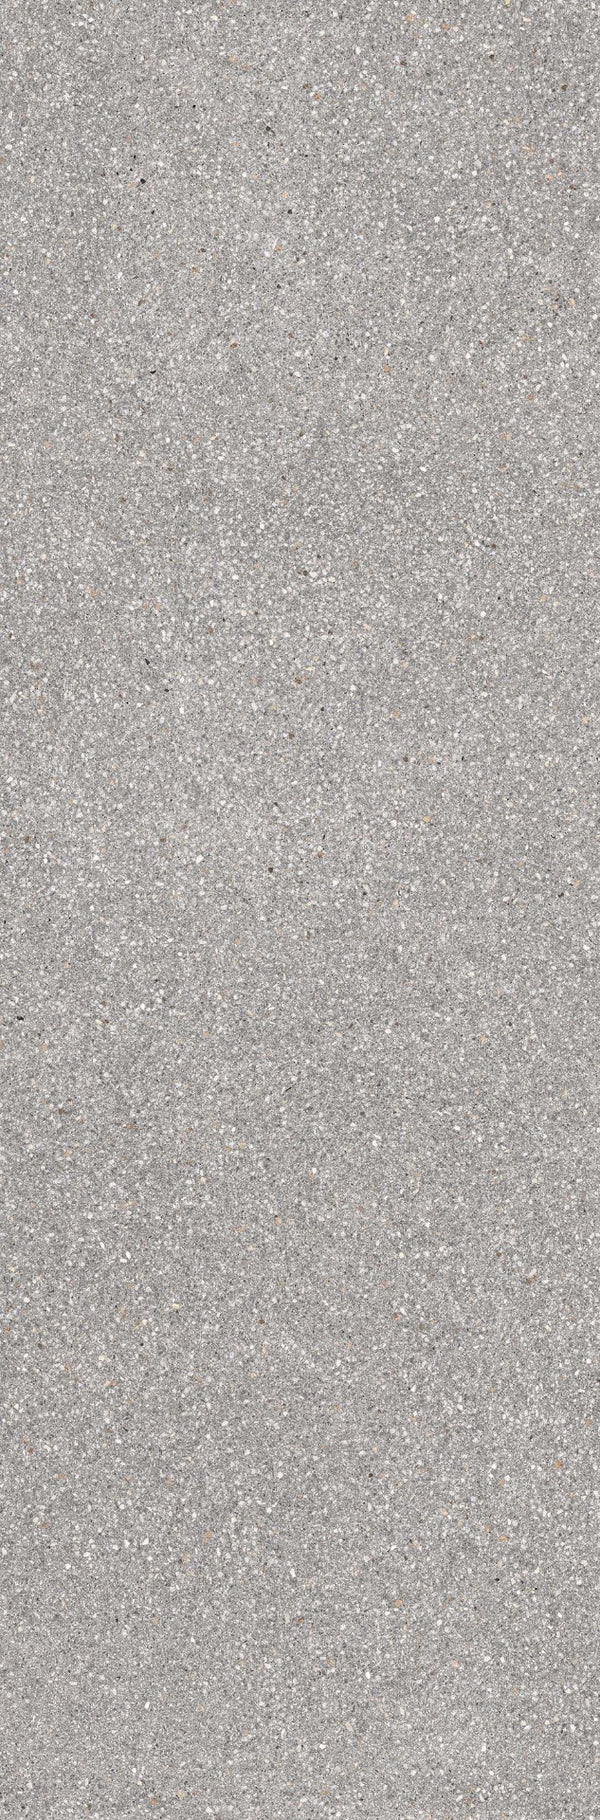 Vives Cies-R Cemento Porcelain Wall Tile White Body Terrazzo Effect 32 x 99cm